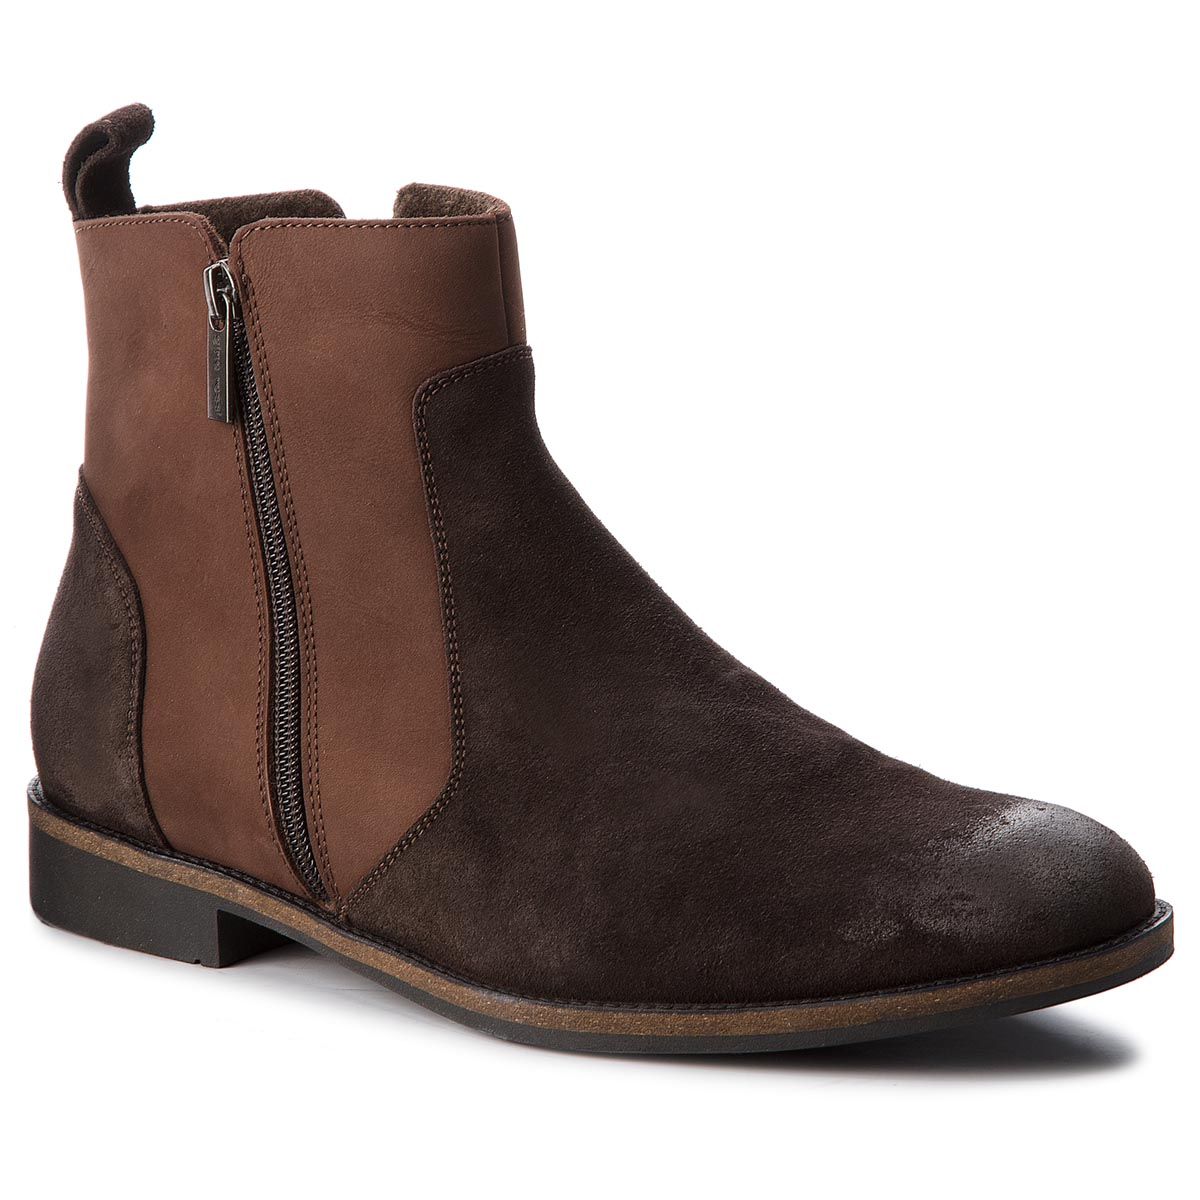 Bottes GINO ROSSI - Mare MBV925-Z40-AGR5-3737-F 92/92